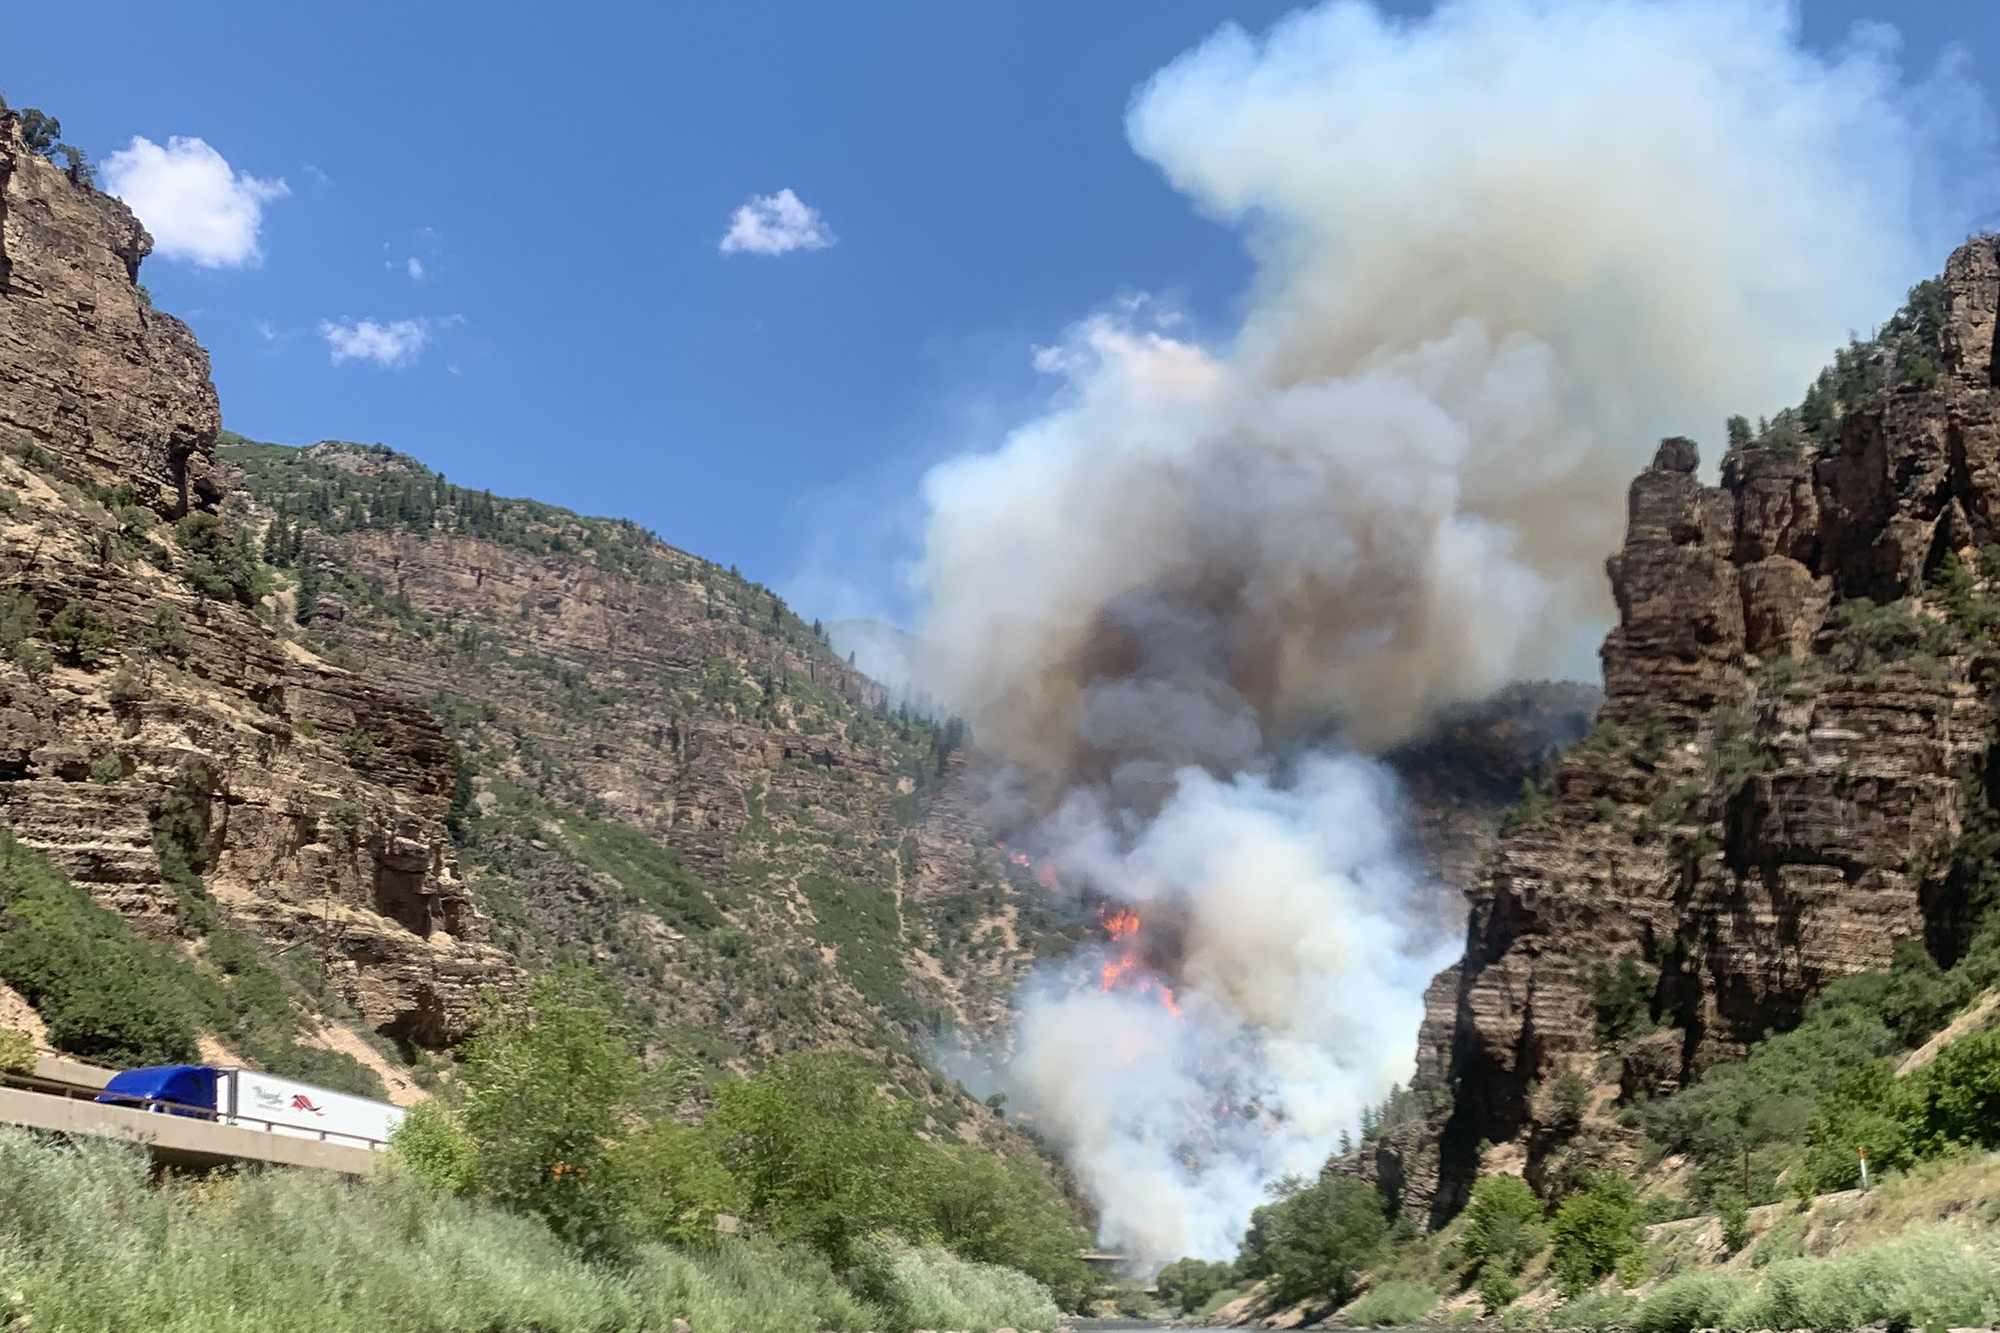 The Grizzly Creek wildfire photographed by tubers on the Colorado River.